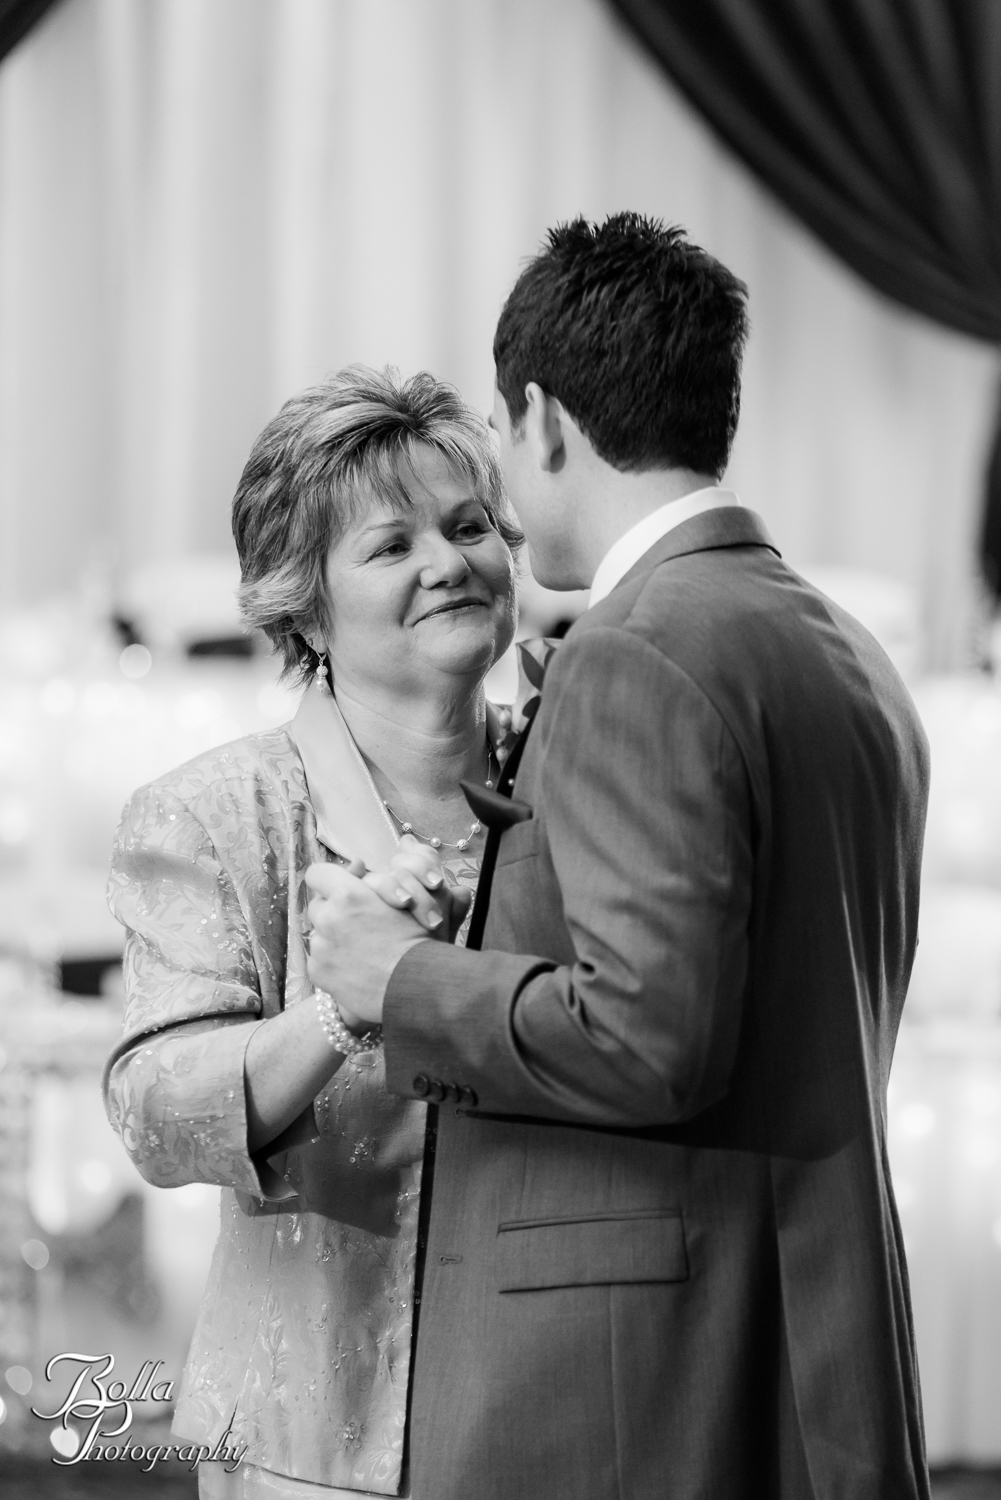 Bolla_Photography_St_Louis_wedding_photographer-0489.jpg